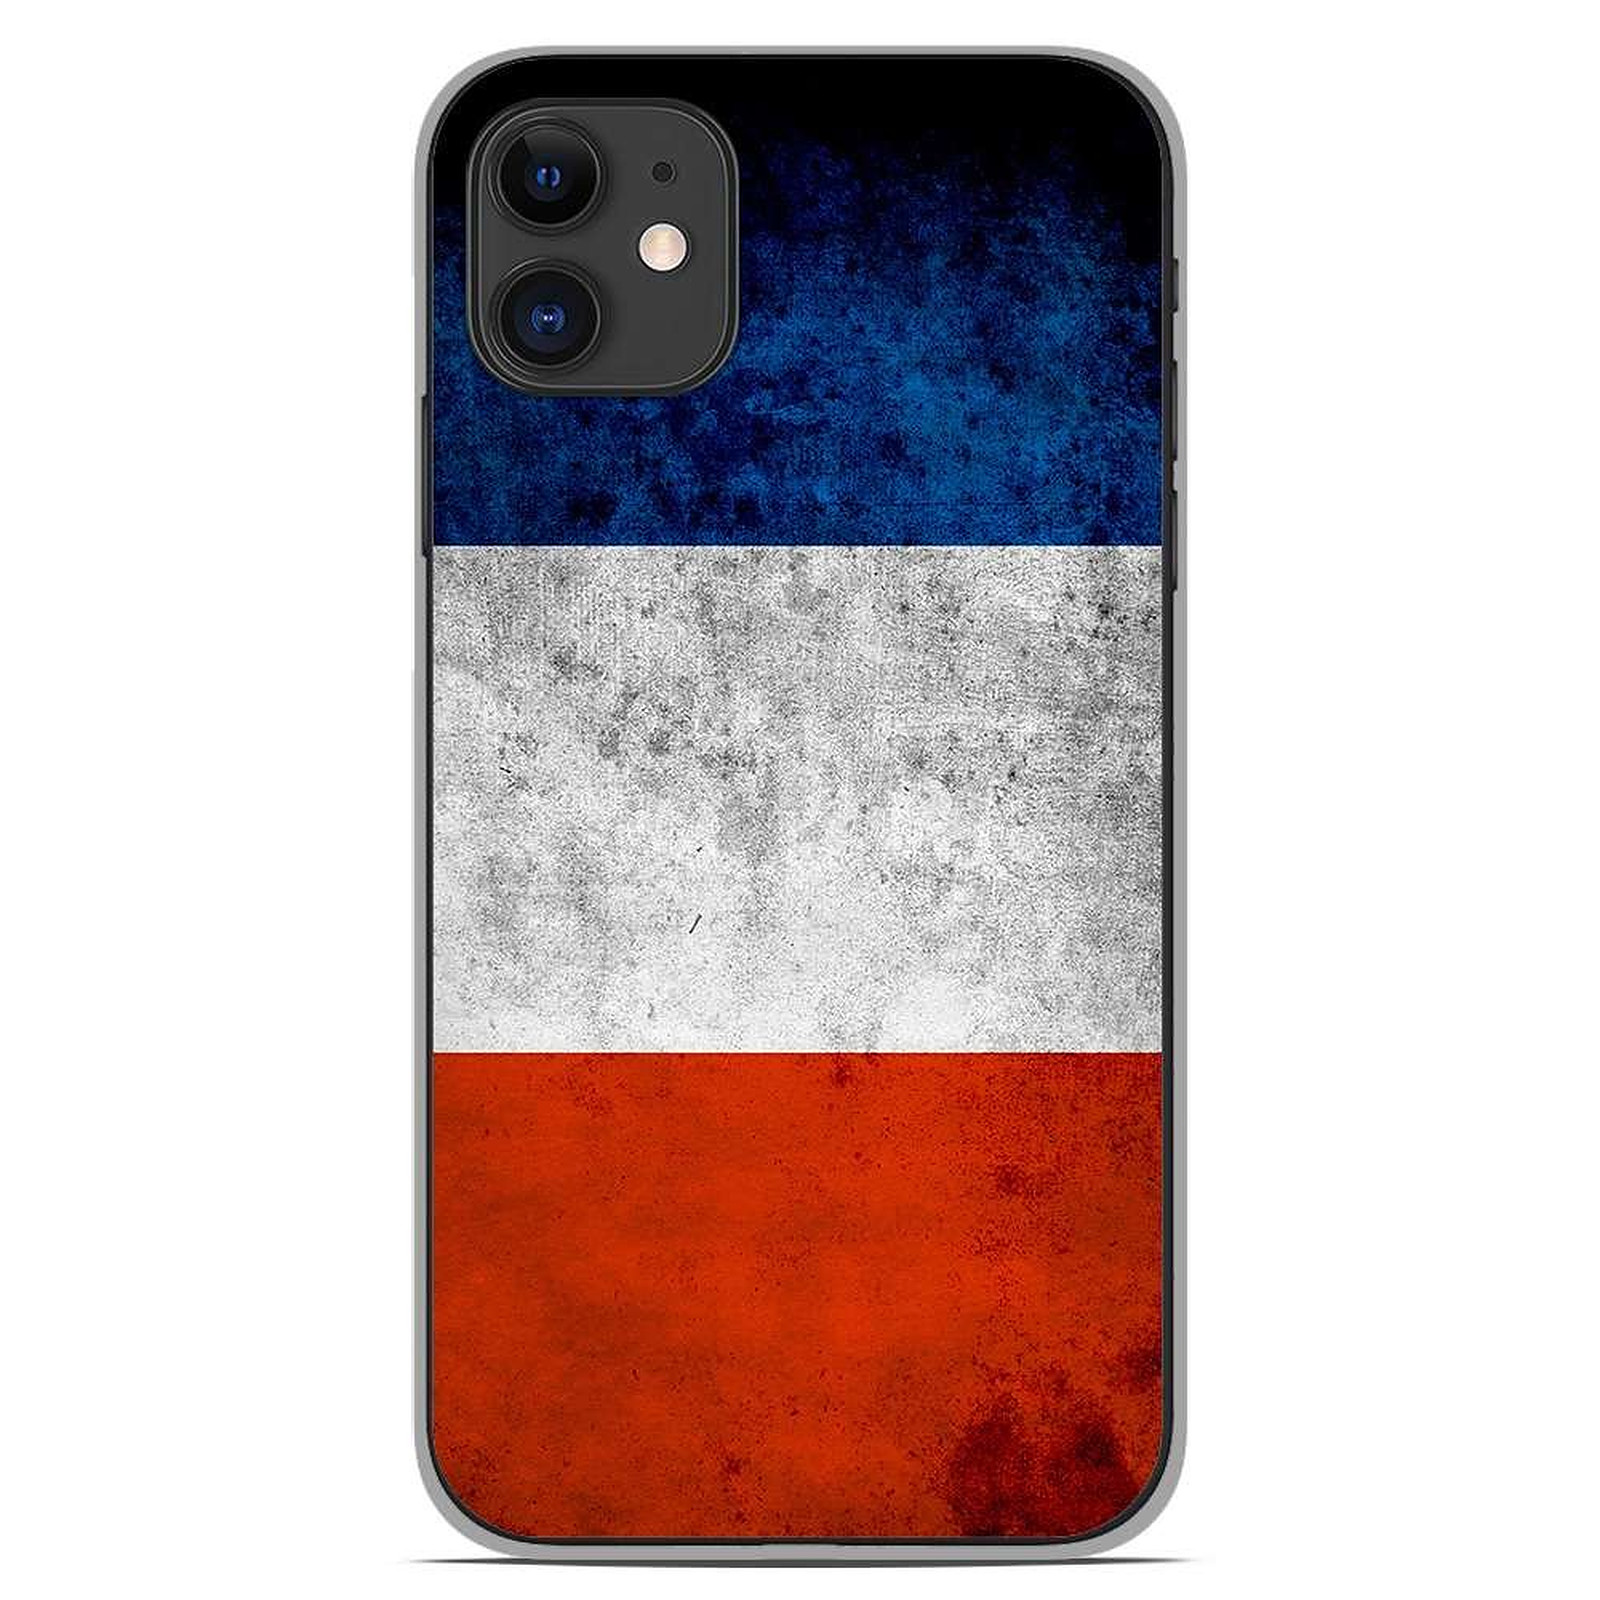 1001 Coques Coque silicone gel Apple iPhone 11 motif Drapeau France